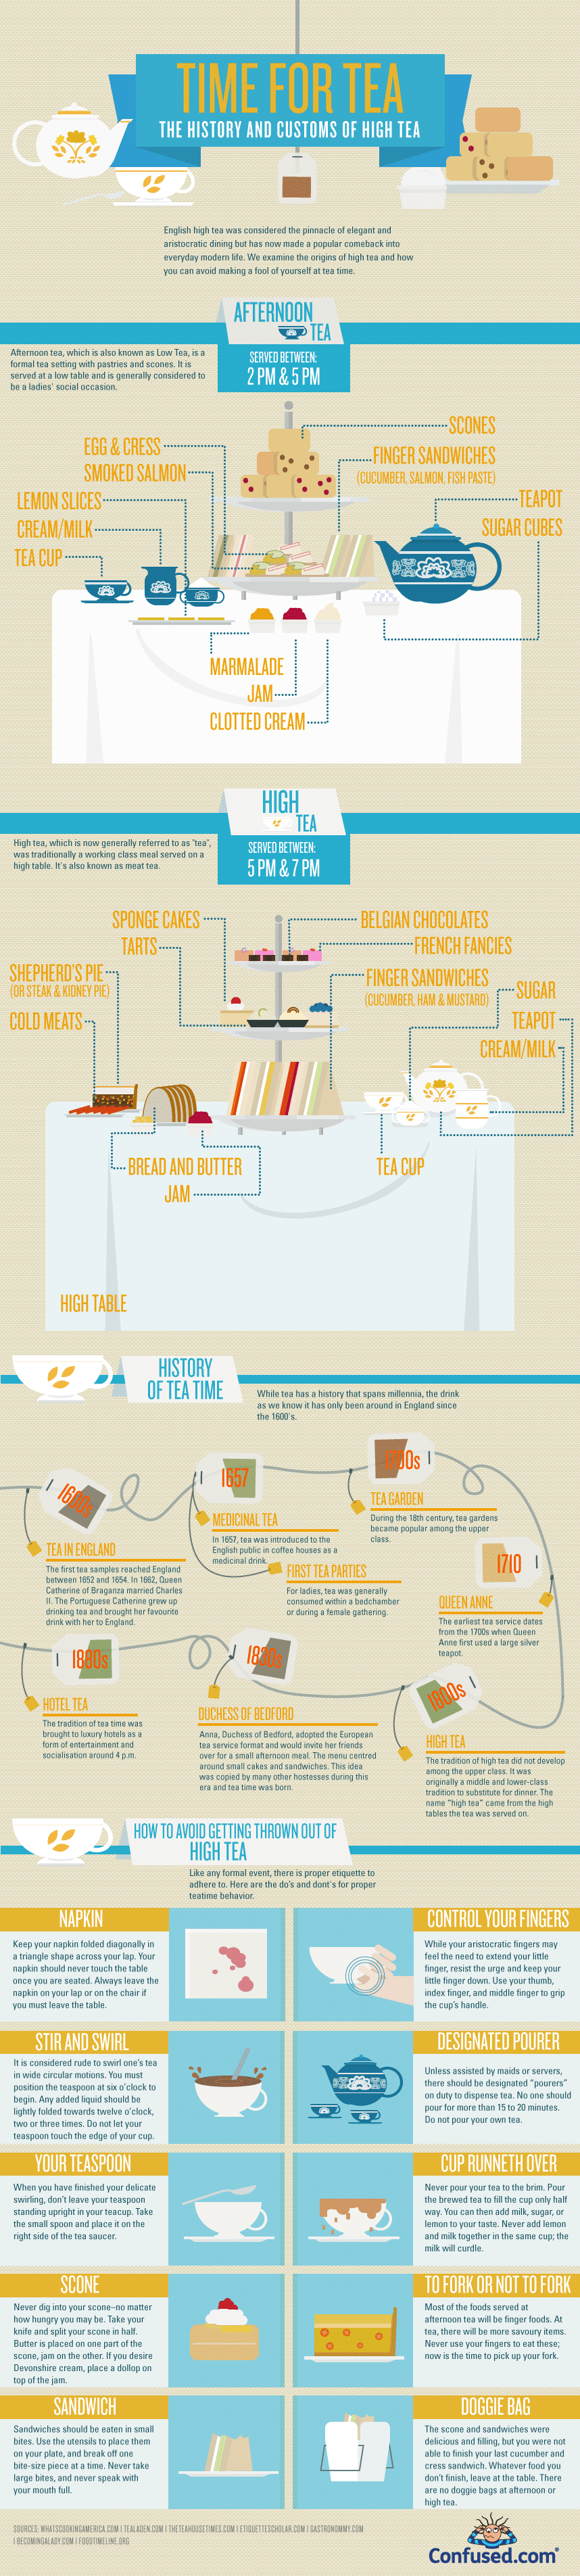 Time For Tea History Infographic